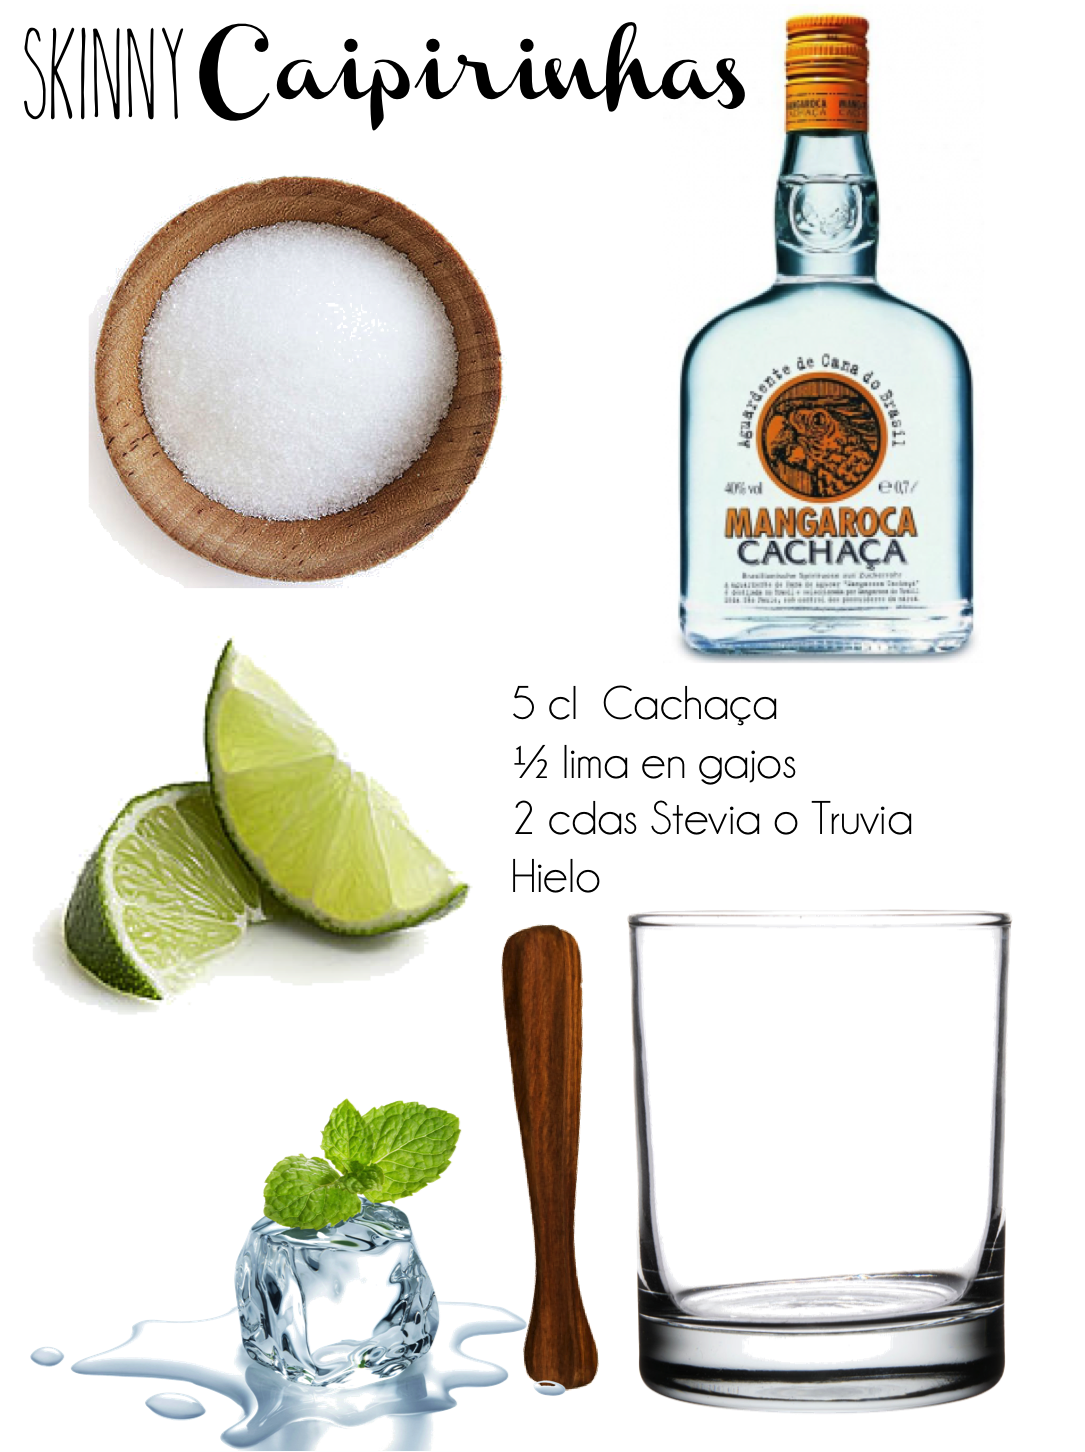 caipirinha light ingredientes